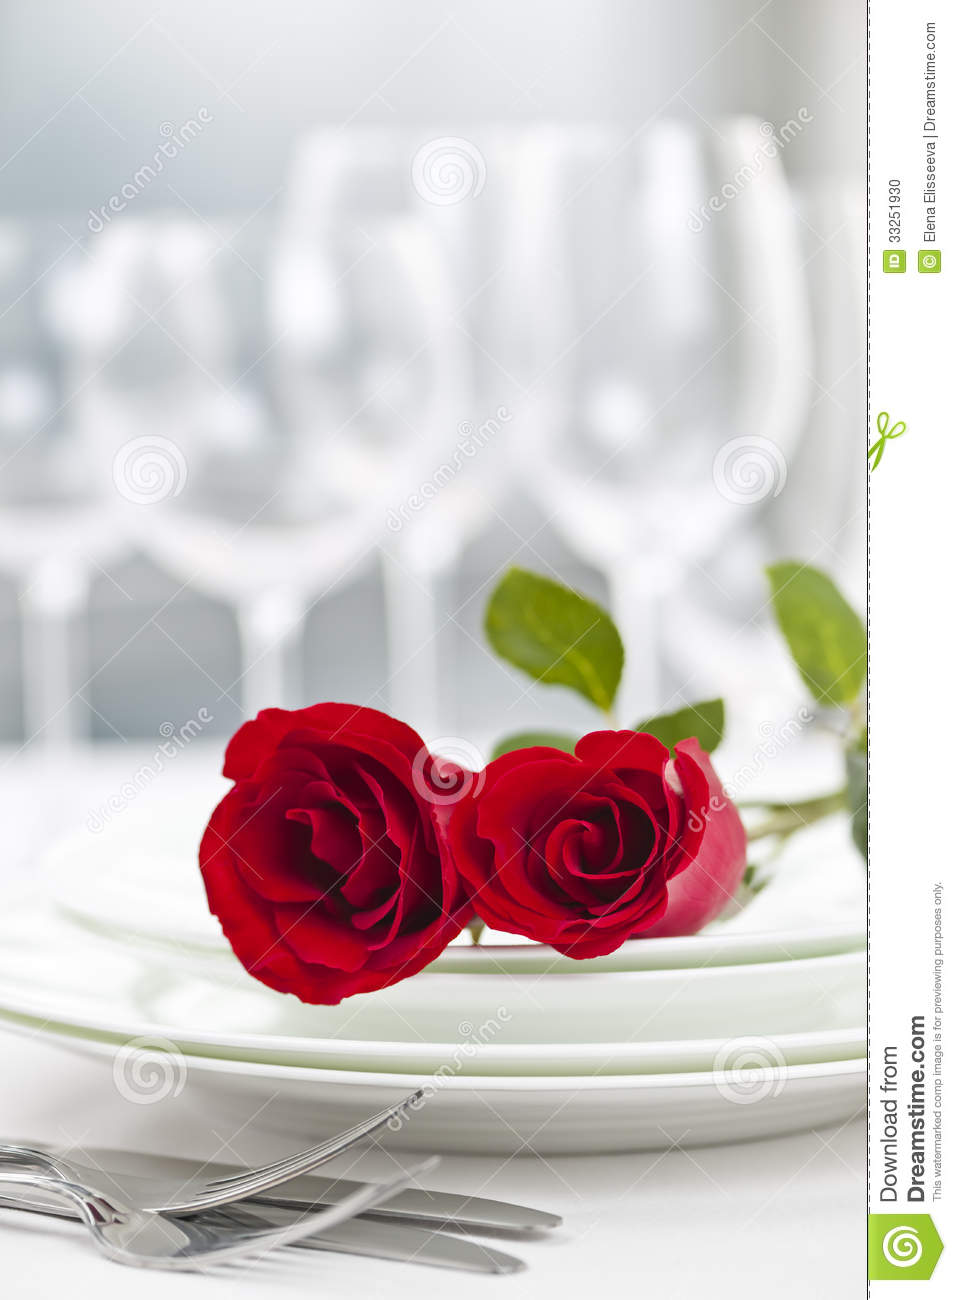 How to set a romantic dinner table for two - Romantic Restaurant Dinner Setting Romantic Restaurant Table Setting For Two